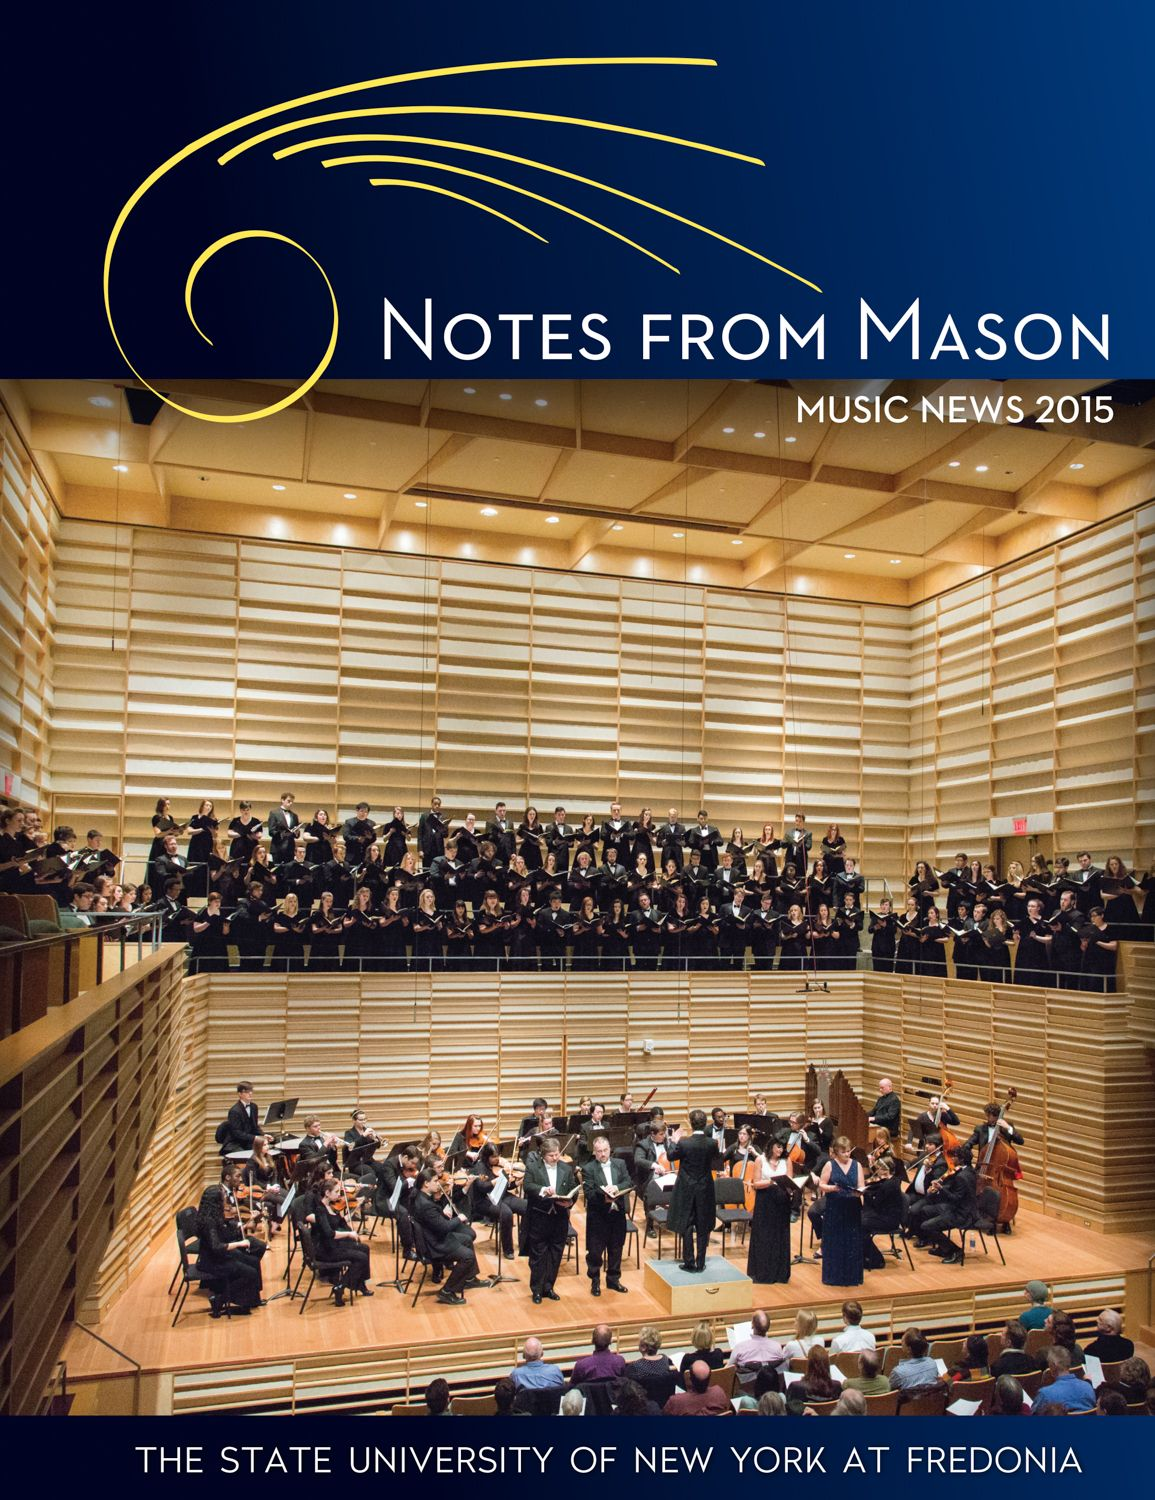 001_2015 notes from mason cover.jpg